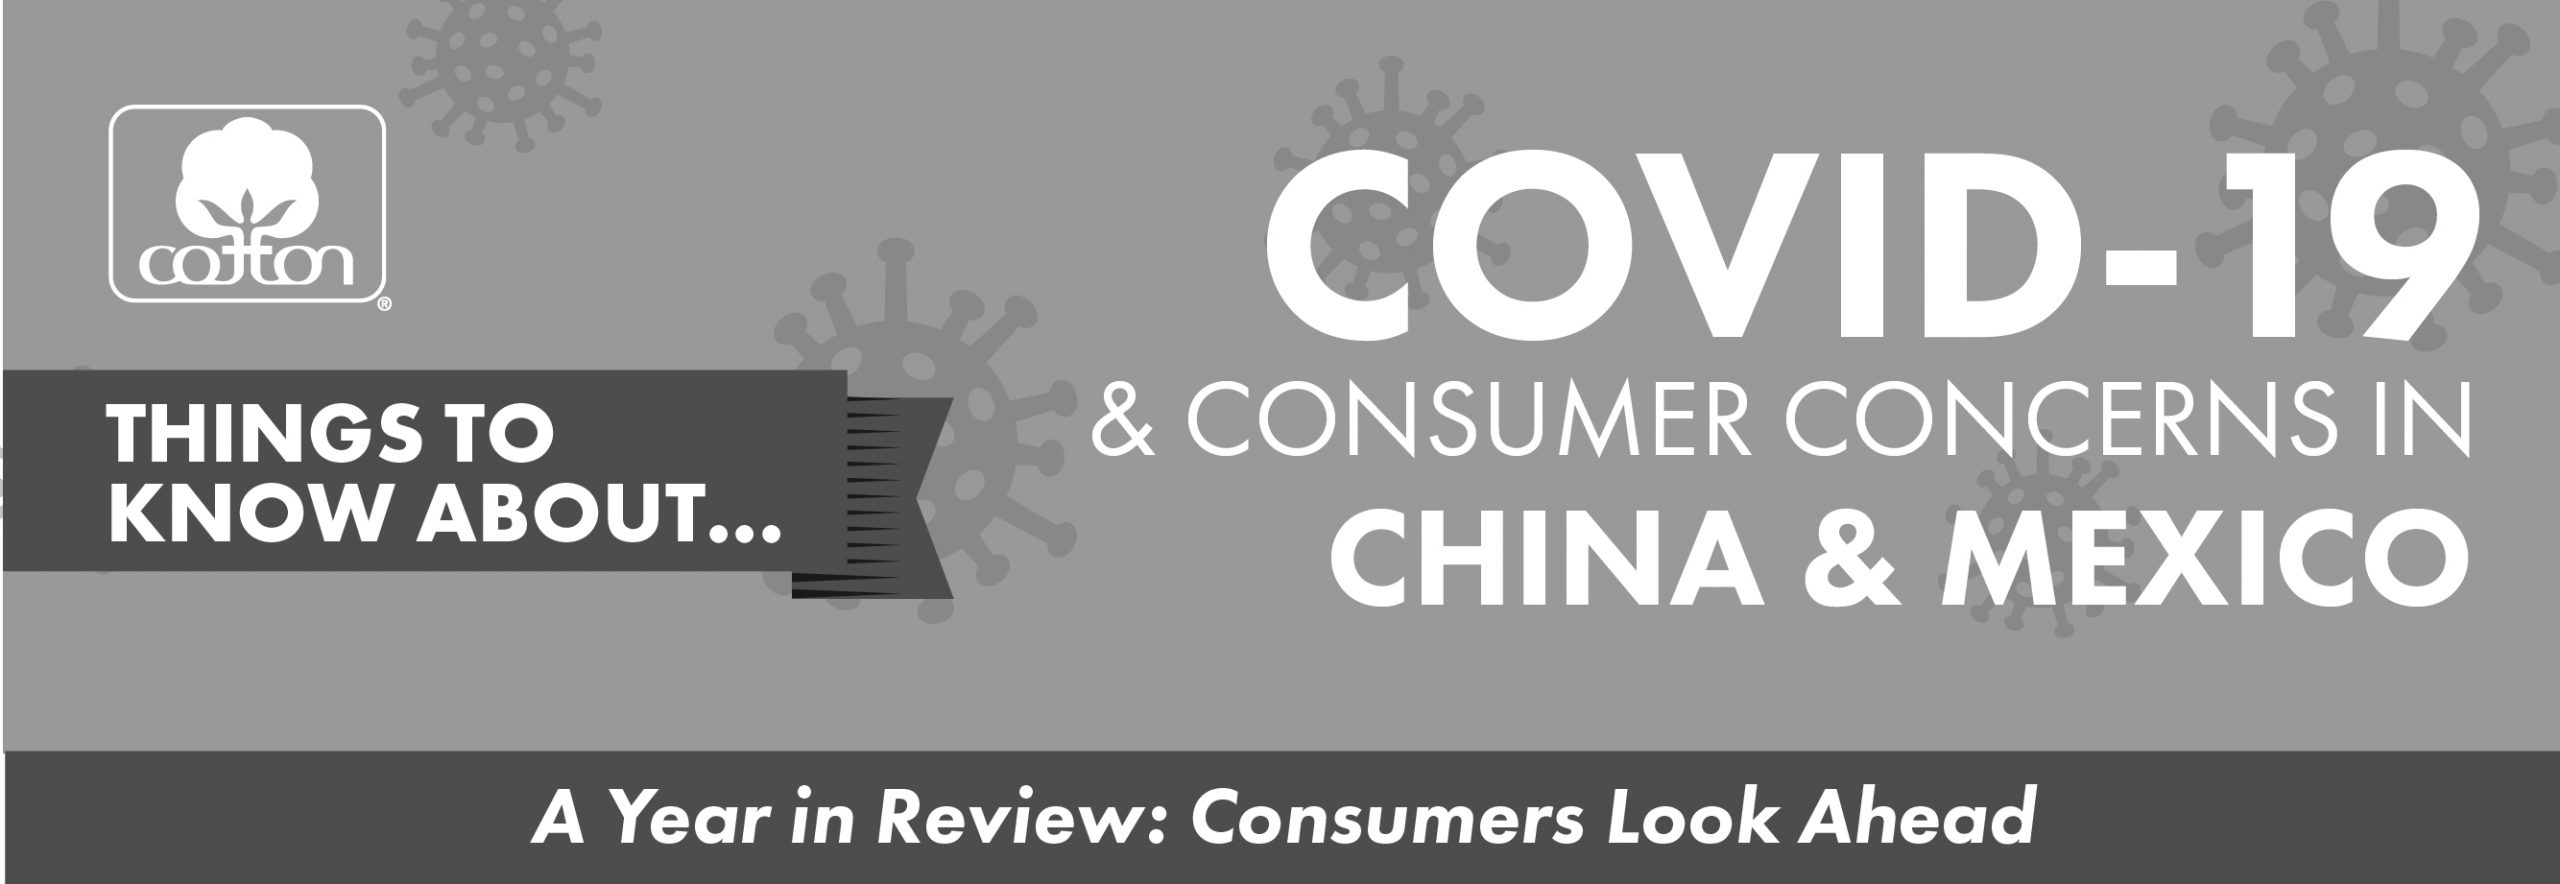 COVID-19 & Consumer Concerns in China and Mexico